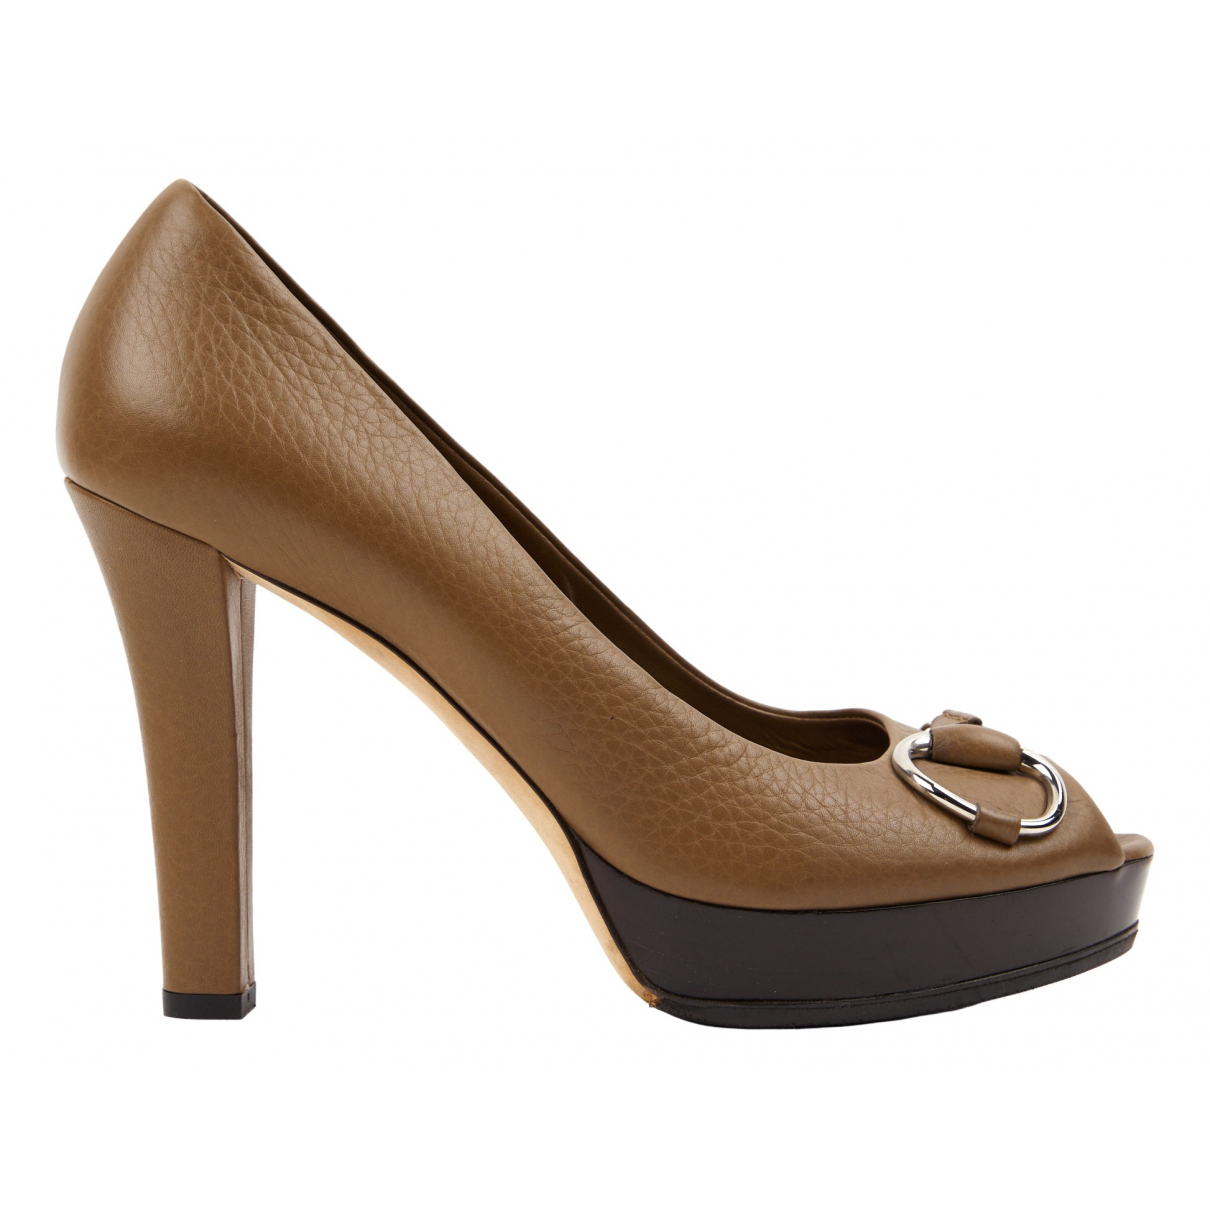 Gucci \N Pumps in  Braun Leder